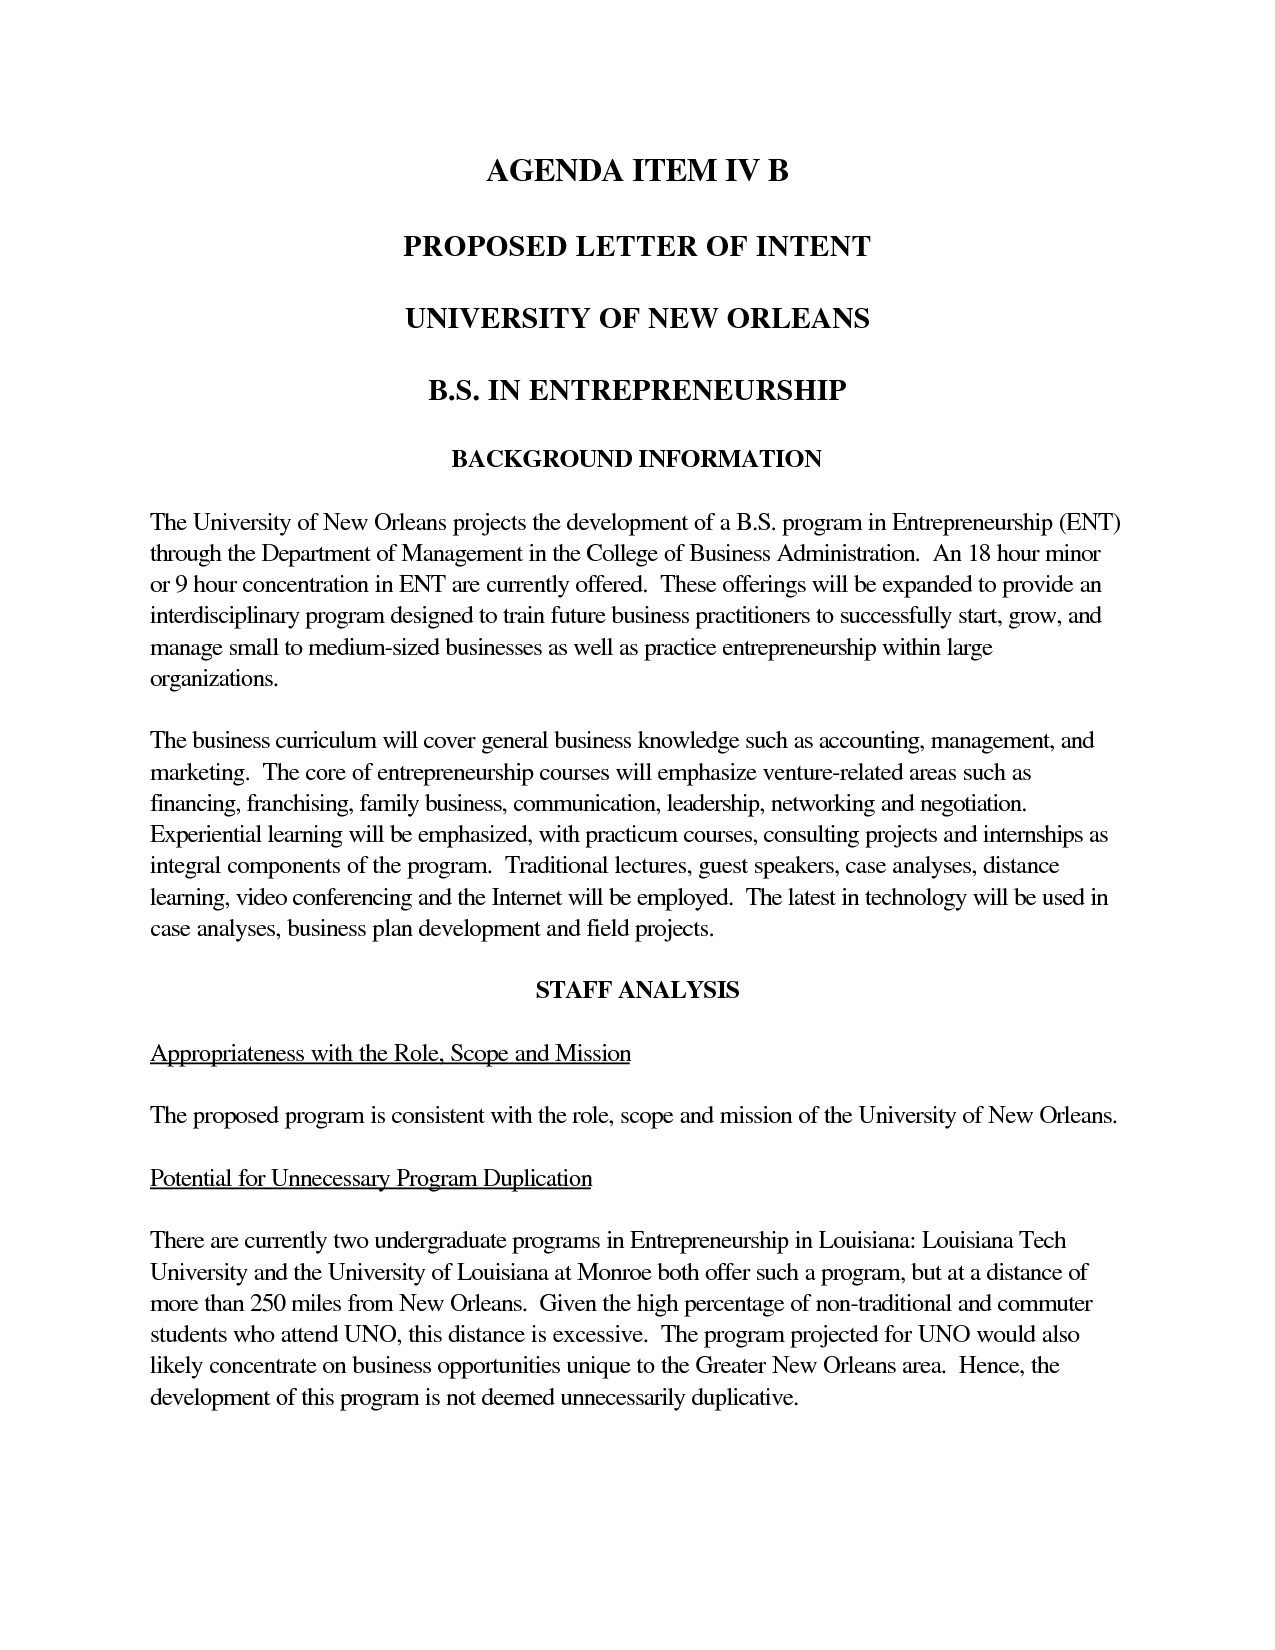 Letter Of Intent Template University   Google Haku  Business Letter Of Intent Sample Template